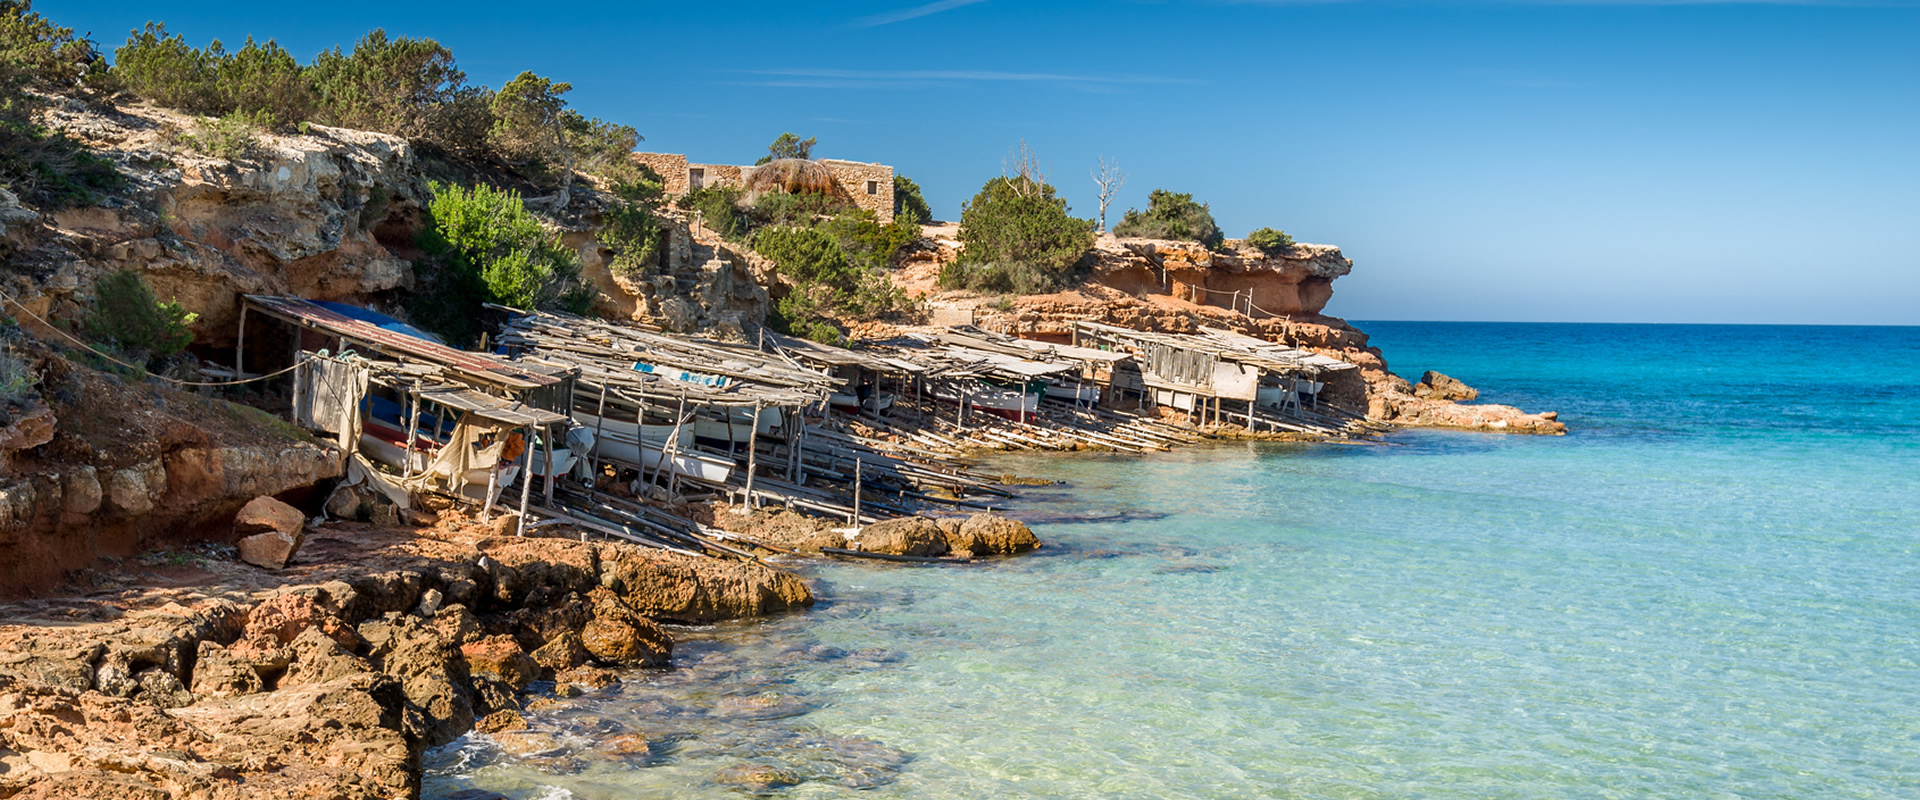 Hotels and More in Cala Saona